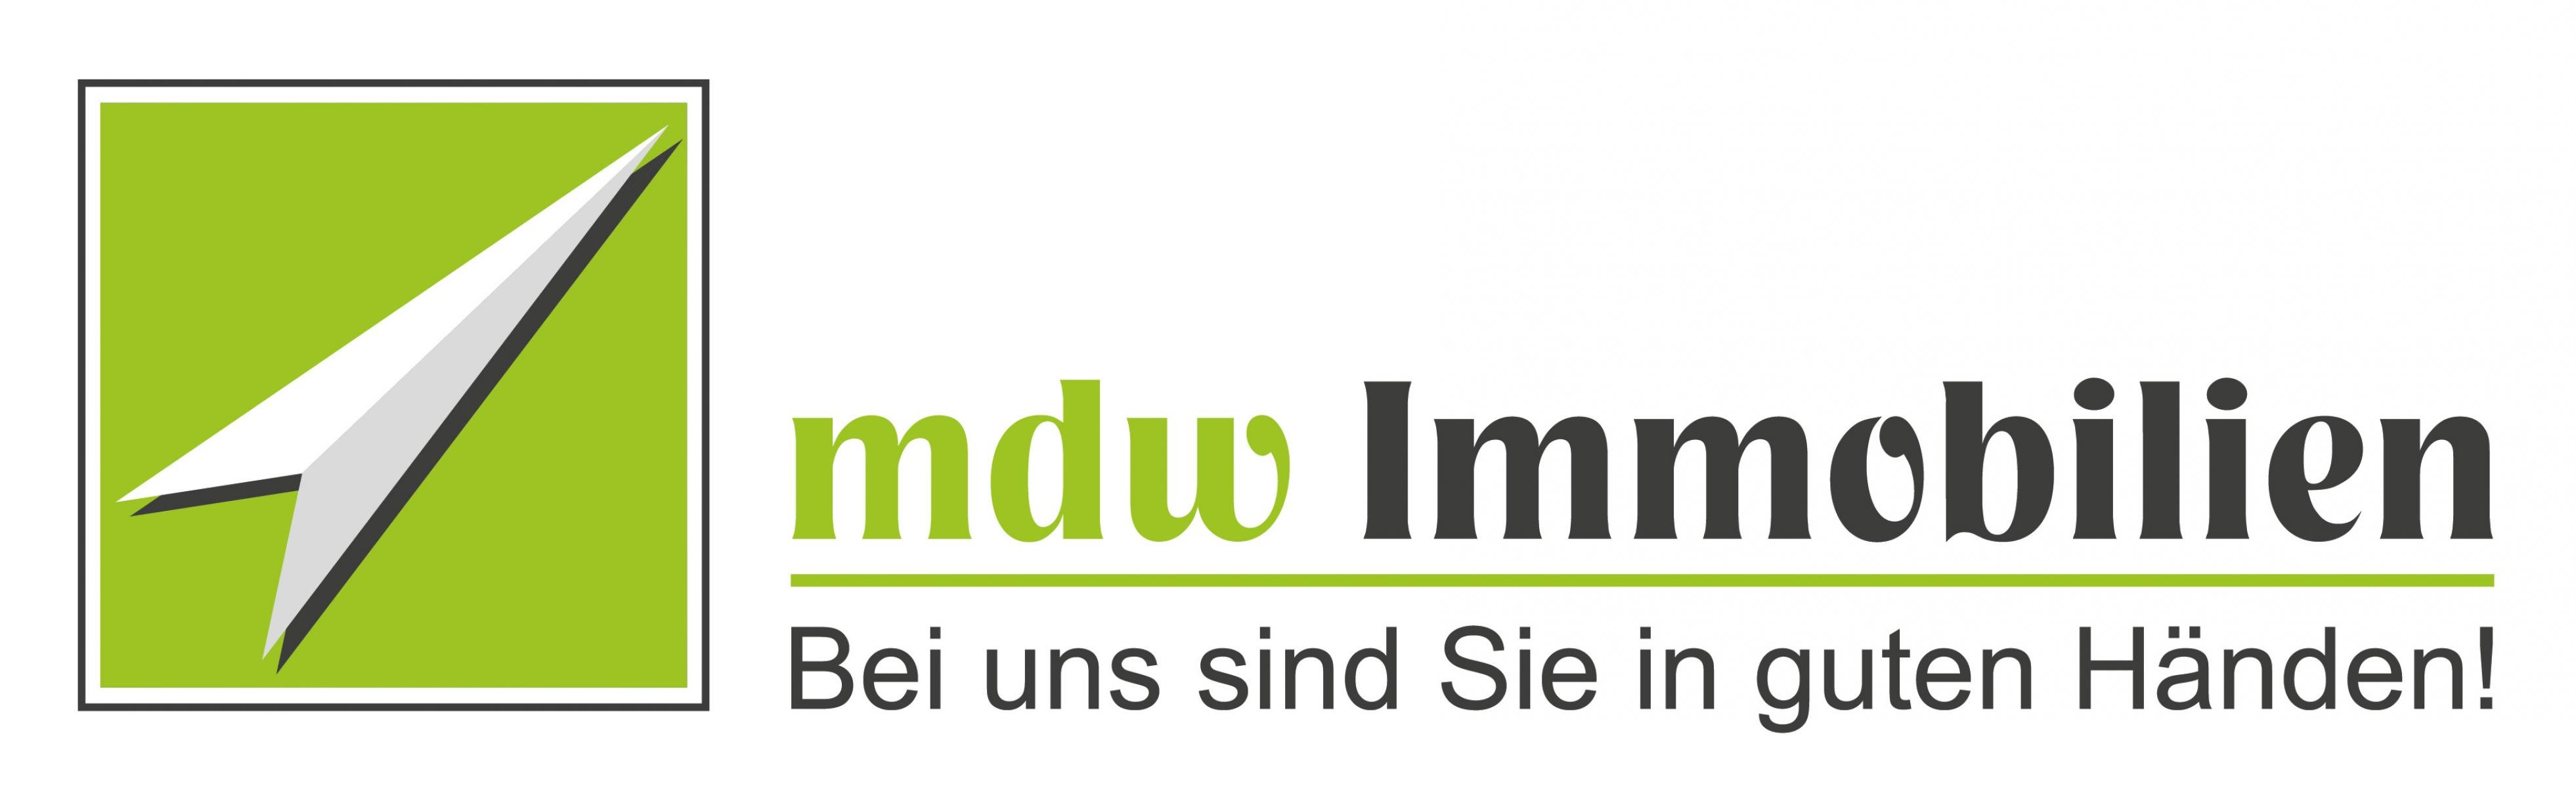 mdw-immobilien Logo